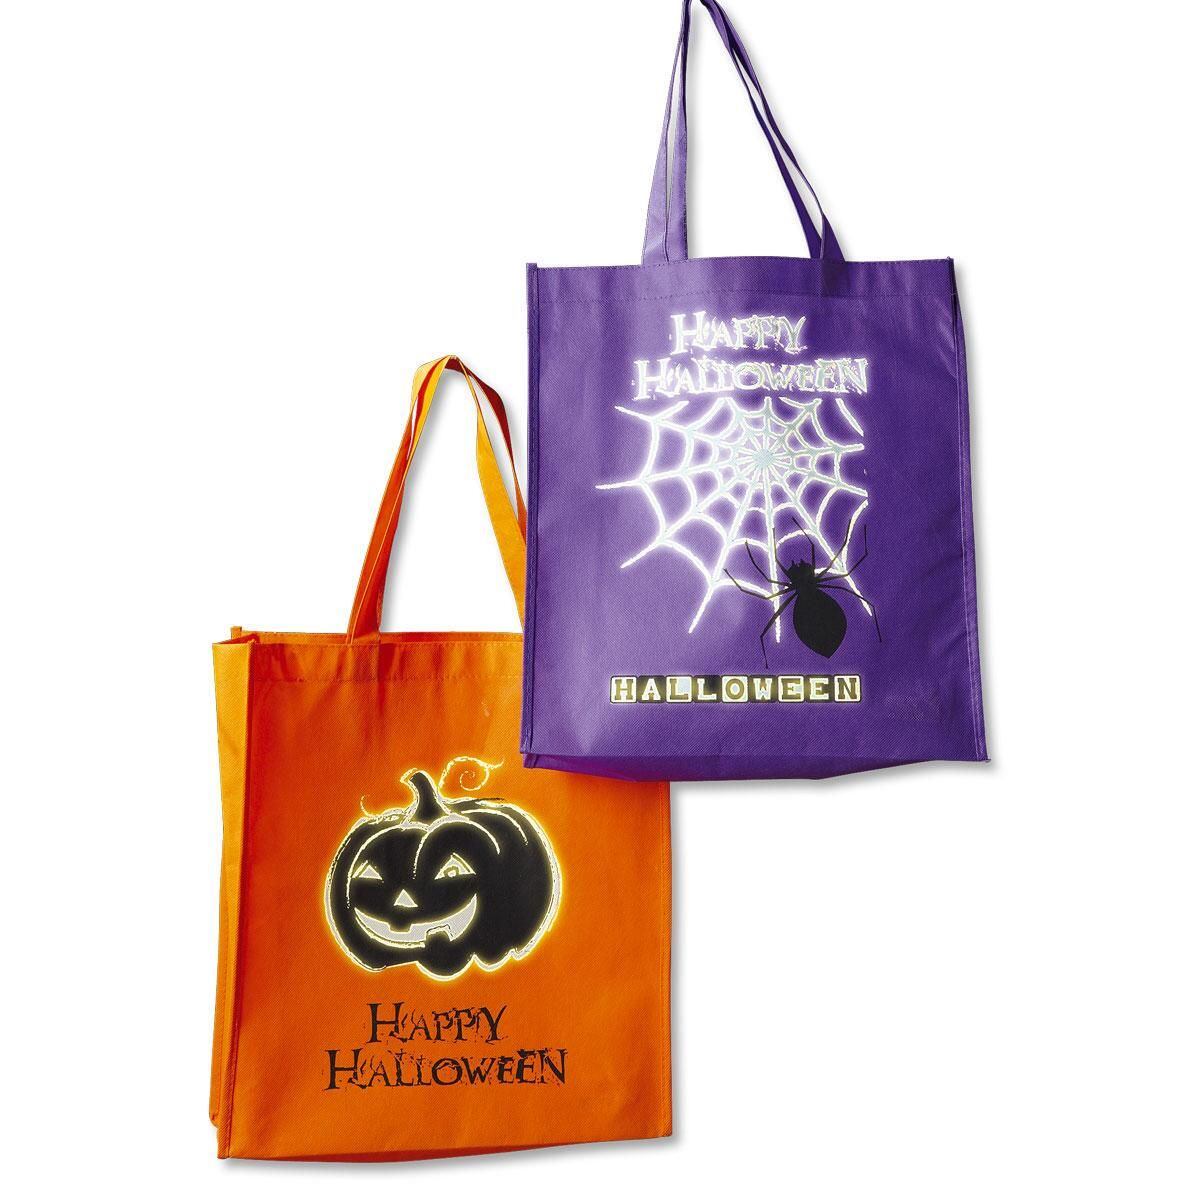 Glow-In-The-Dark Tote Bag